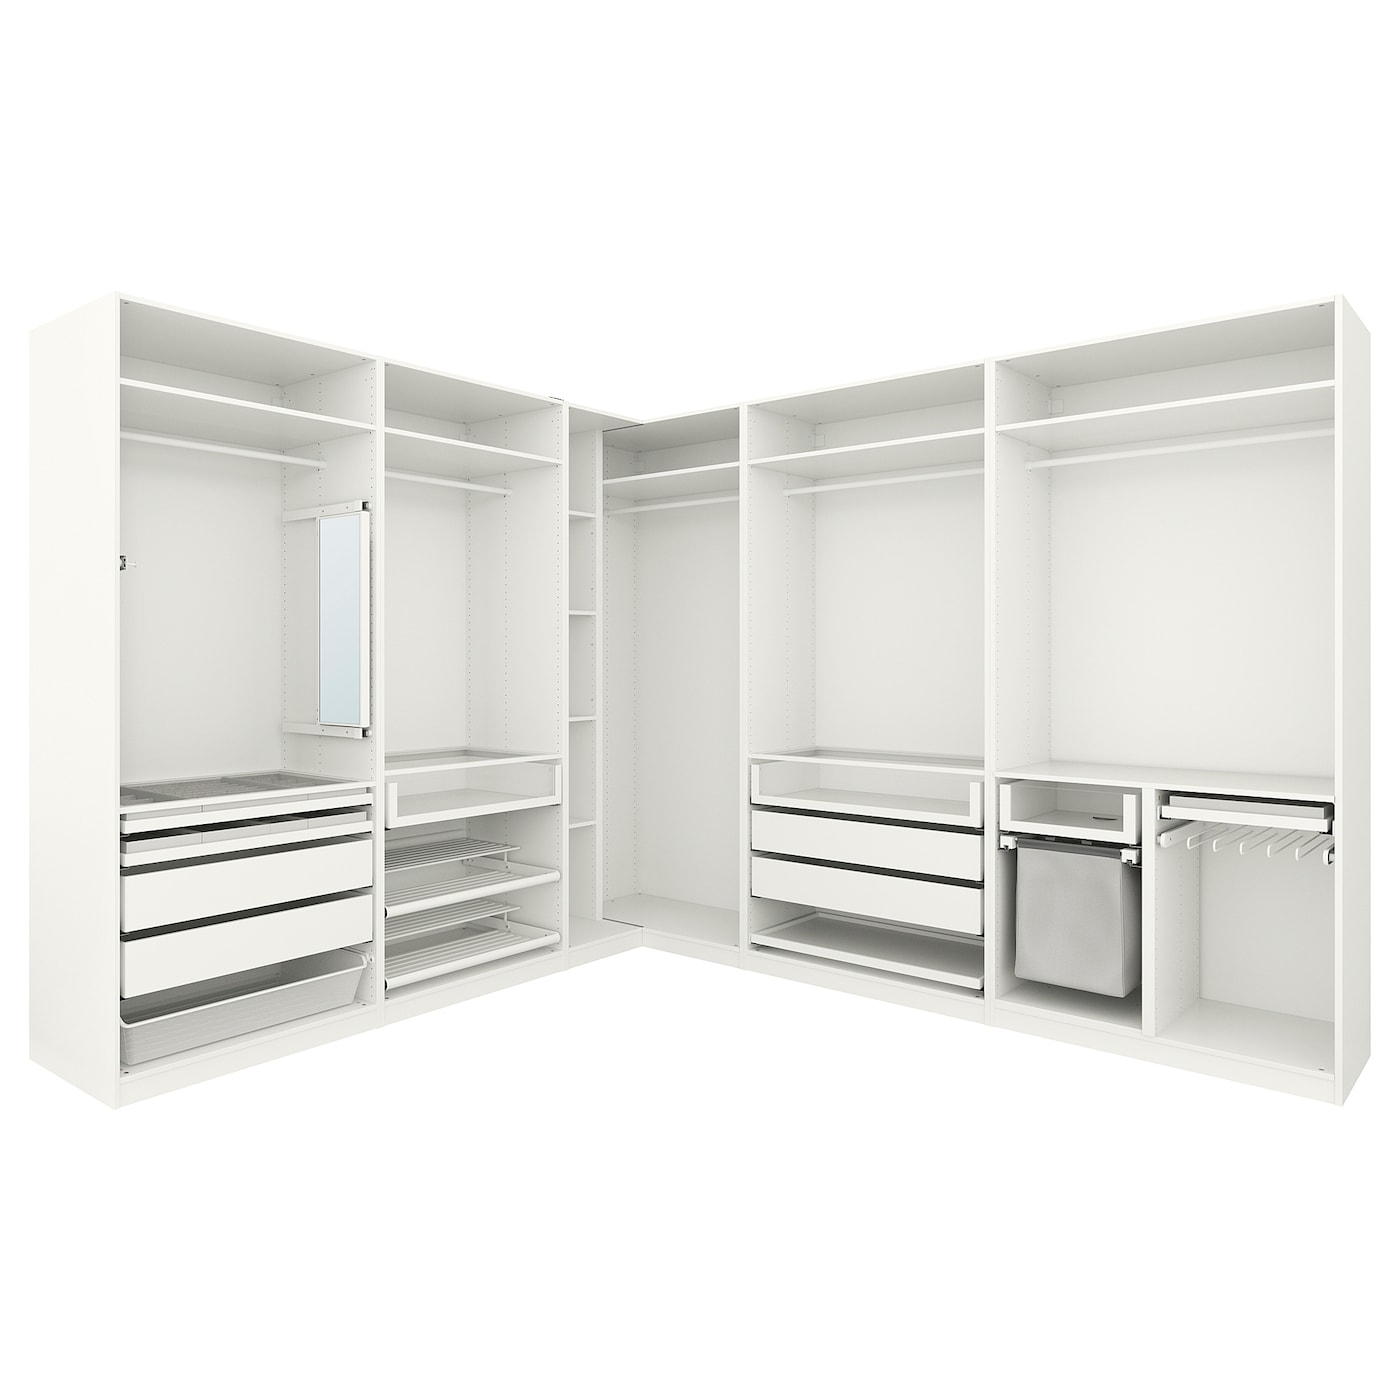 pax penderie d 39 angle blanc 310 310 x 236 cm ikea. Black Bedroom Furniture Sets. Home Design Ideas